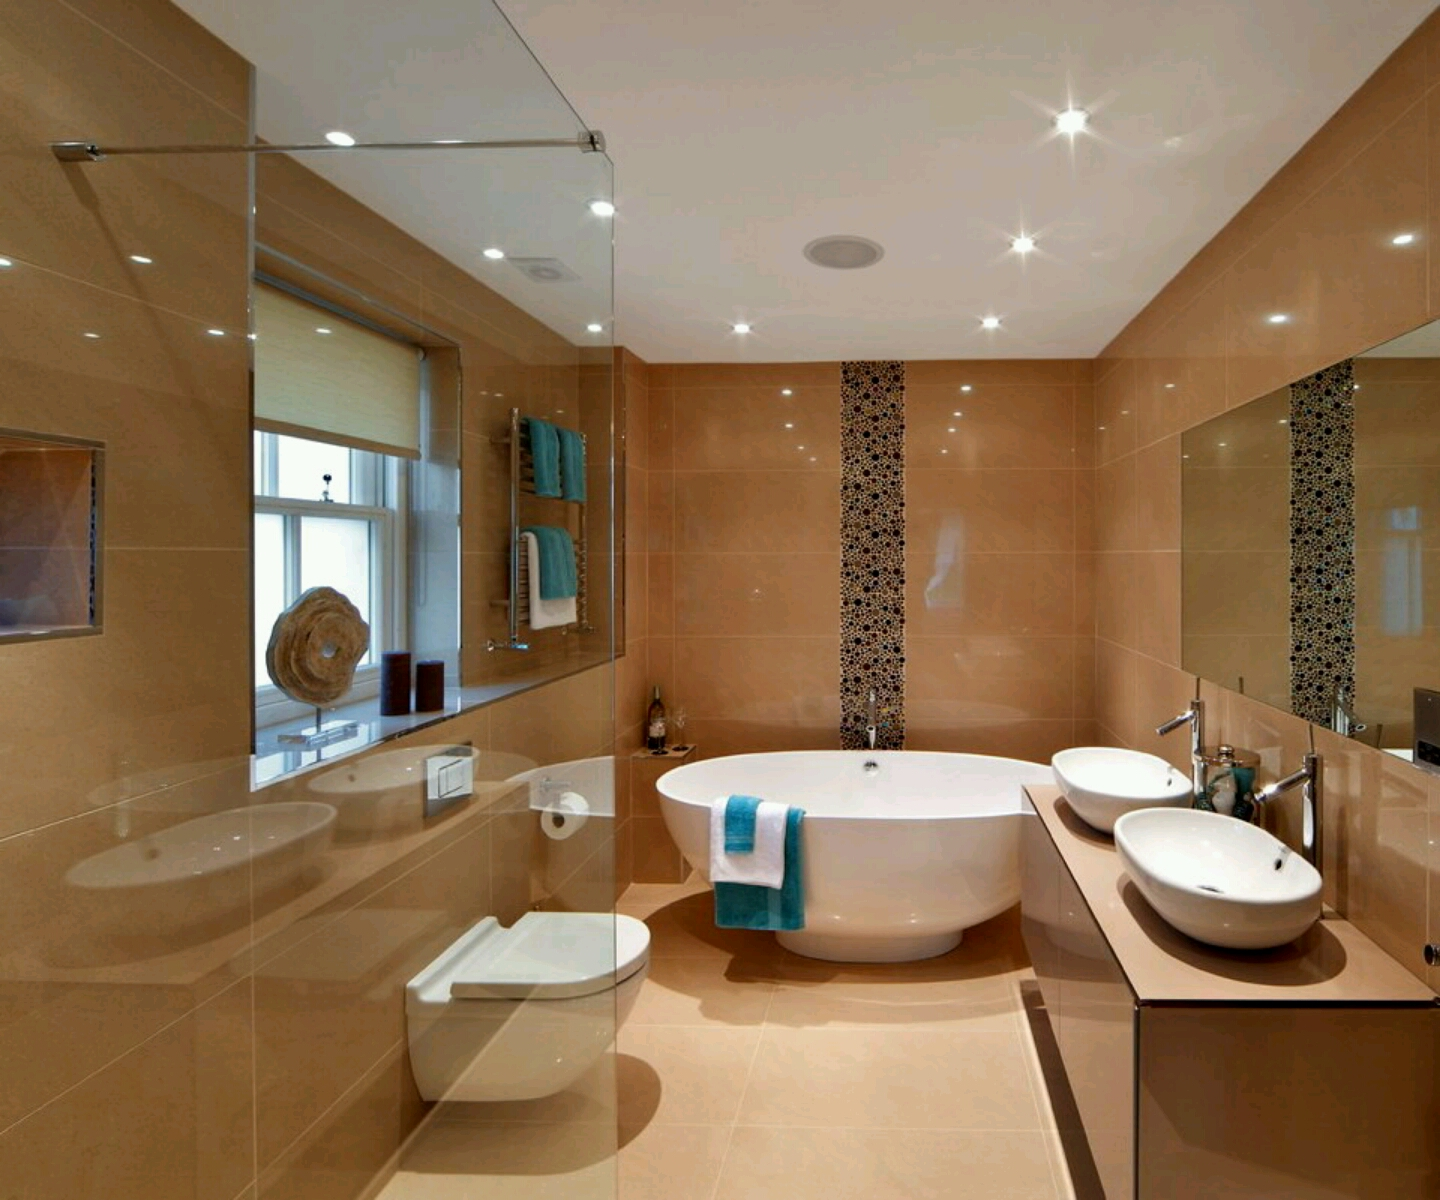 Luxury modern bathrooms designs decoration ideas new for Exclusive bathroom designs